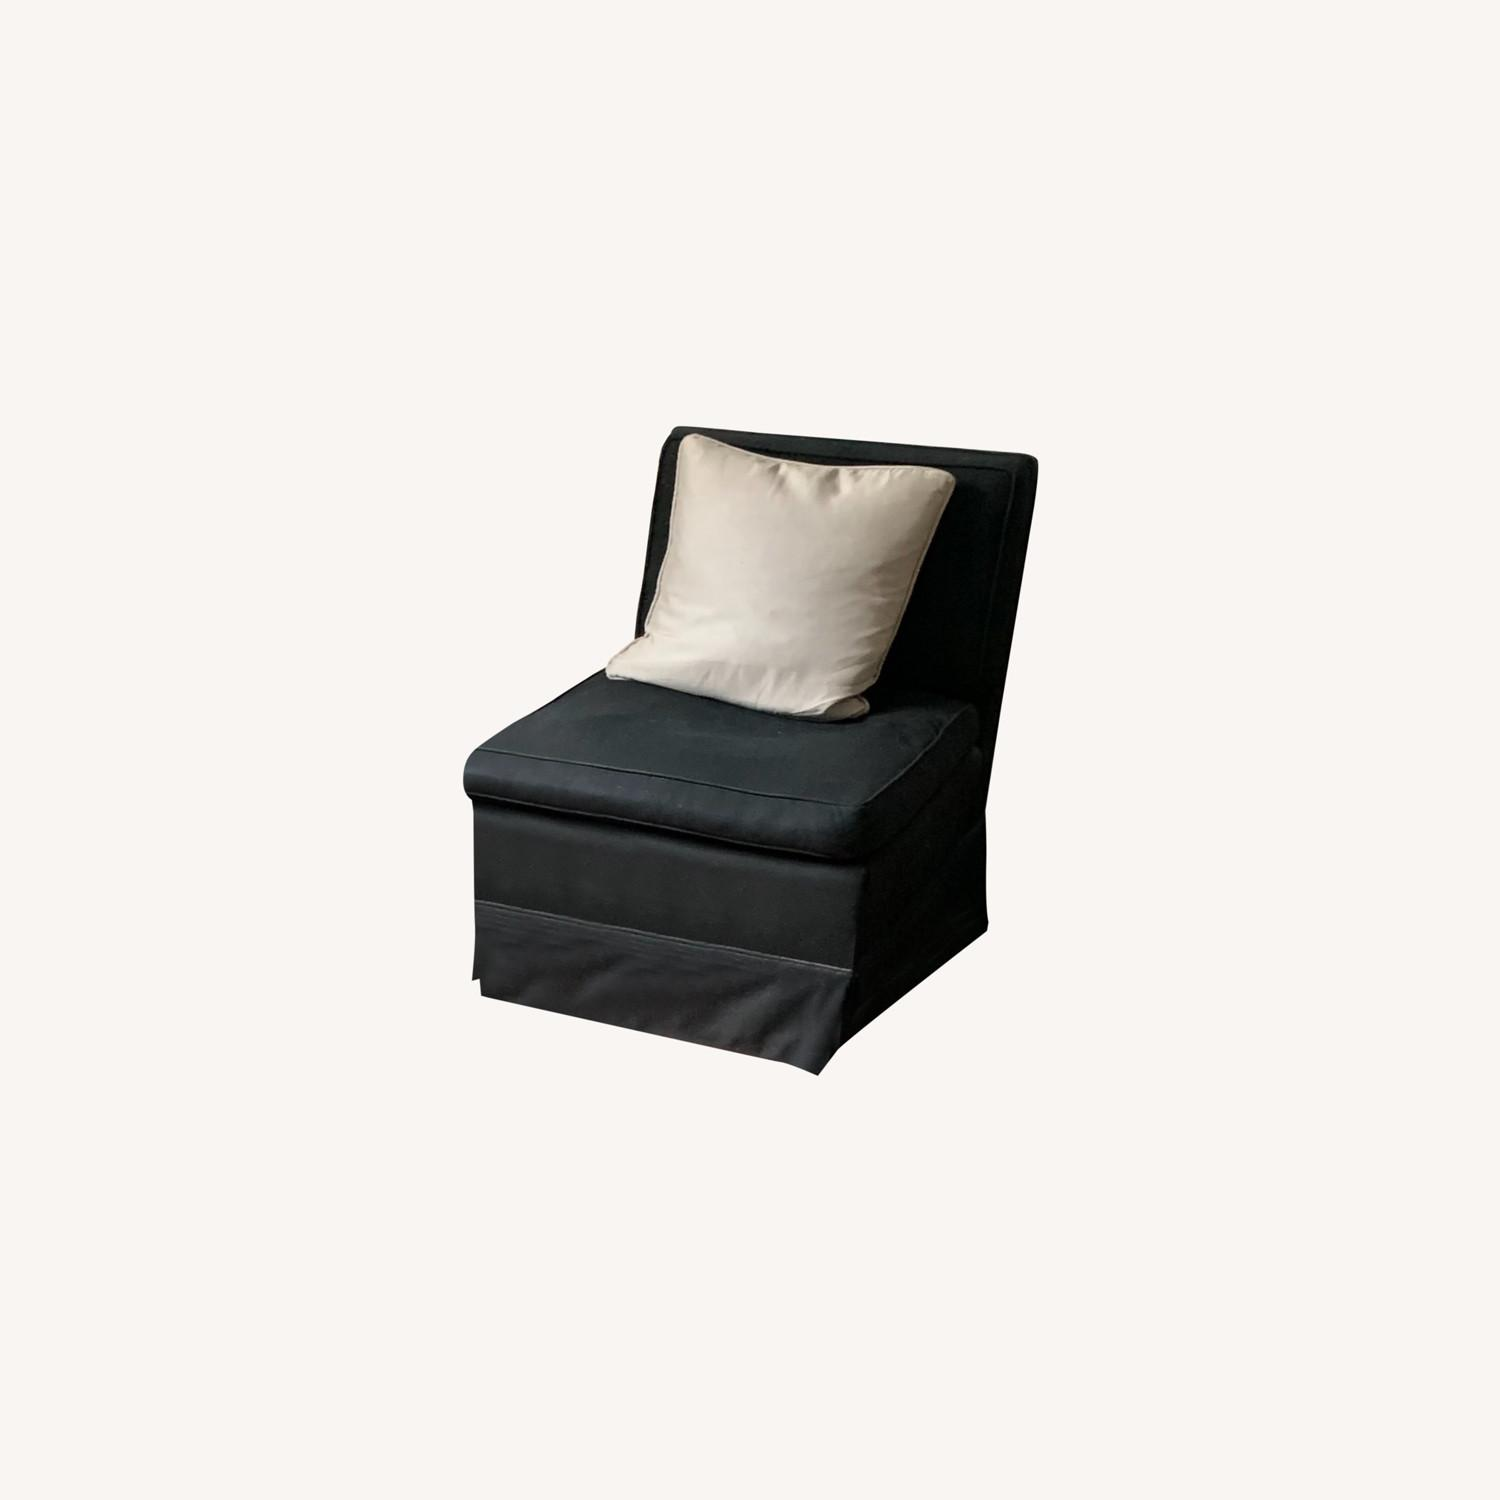 4 Contemporary Modern Chairs - image-0